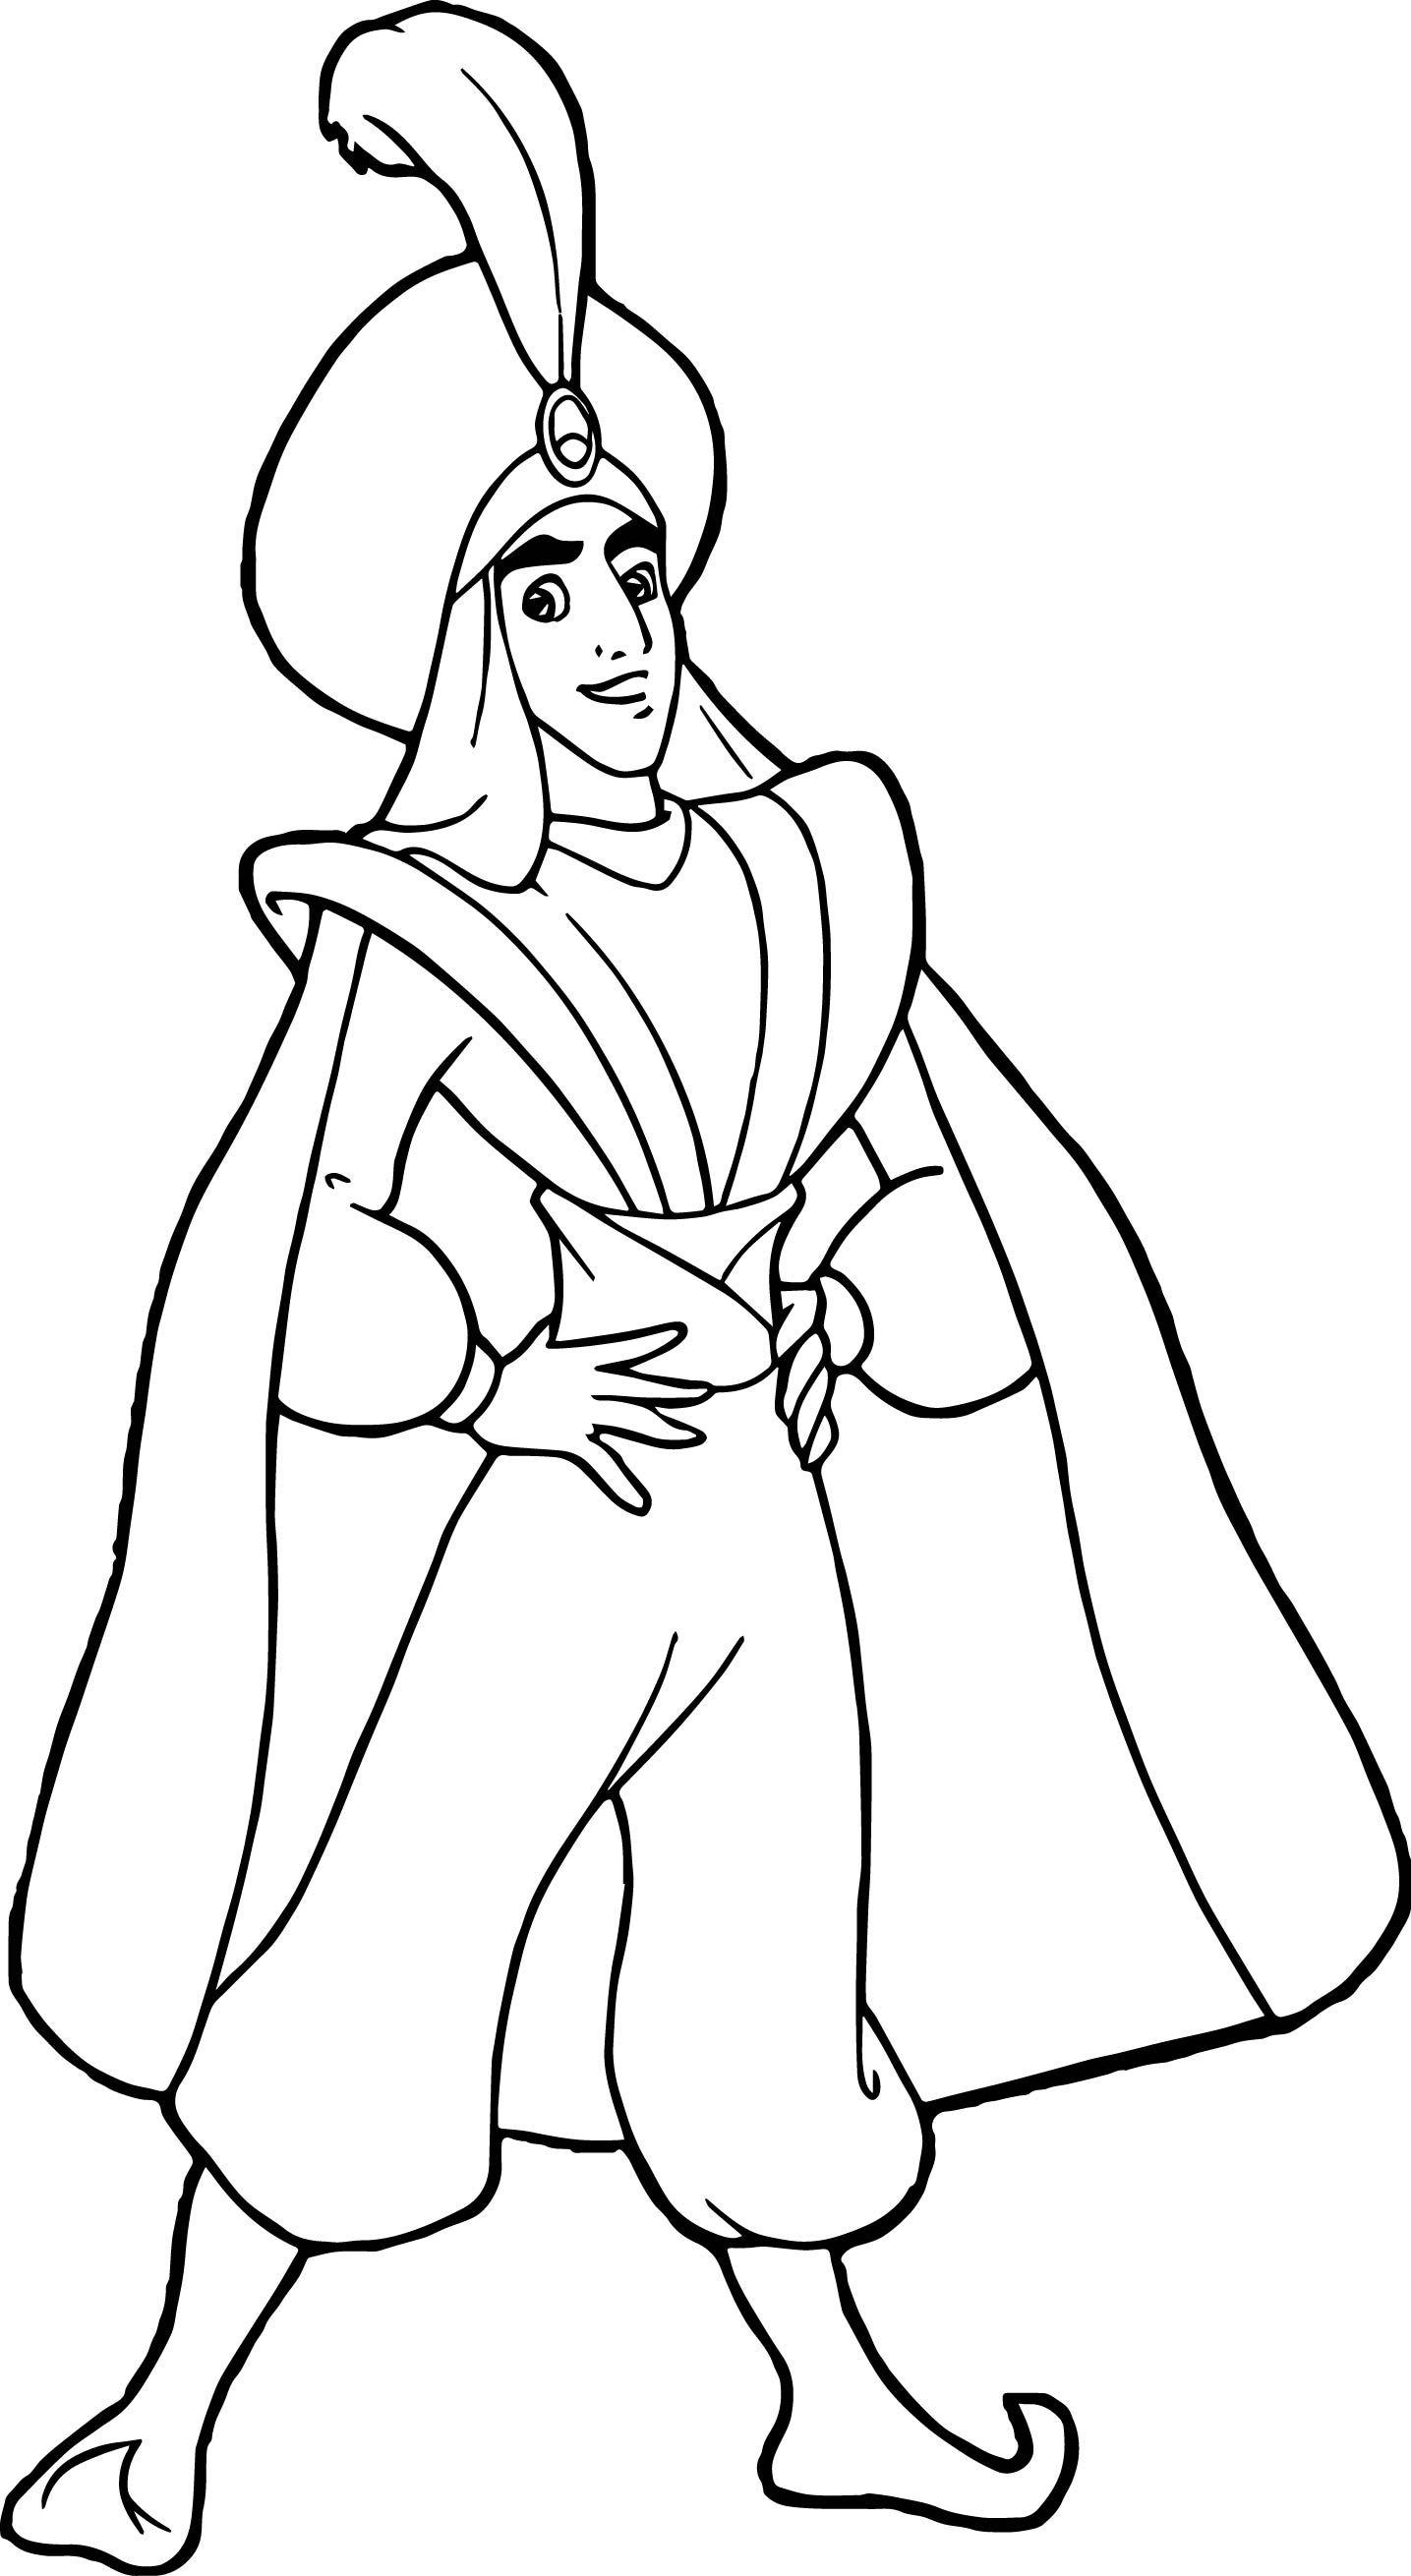 Cool Prince Ali Aladdin Coloring Page Cartoon Coloring Pages